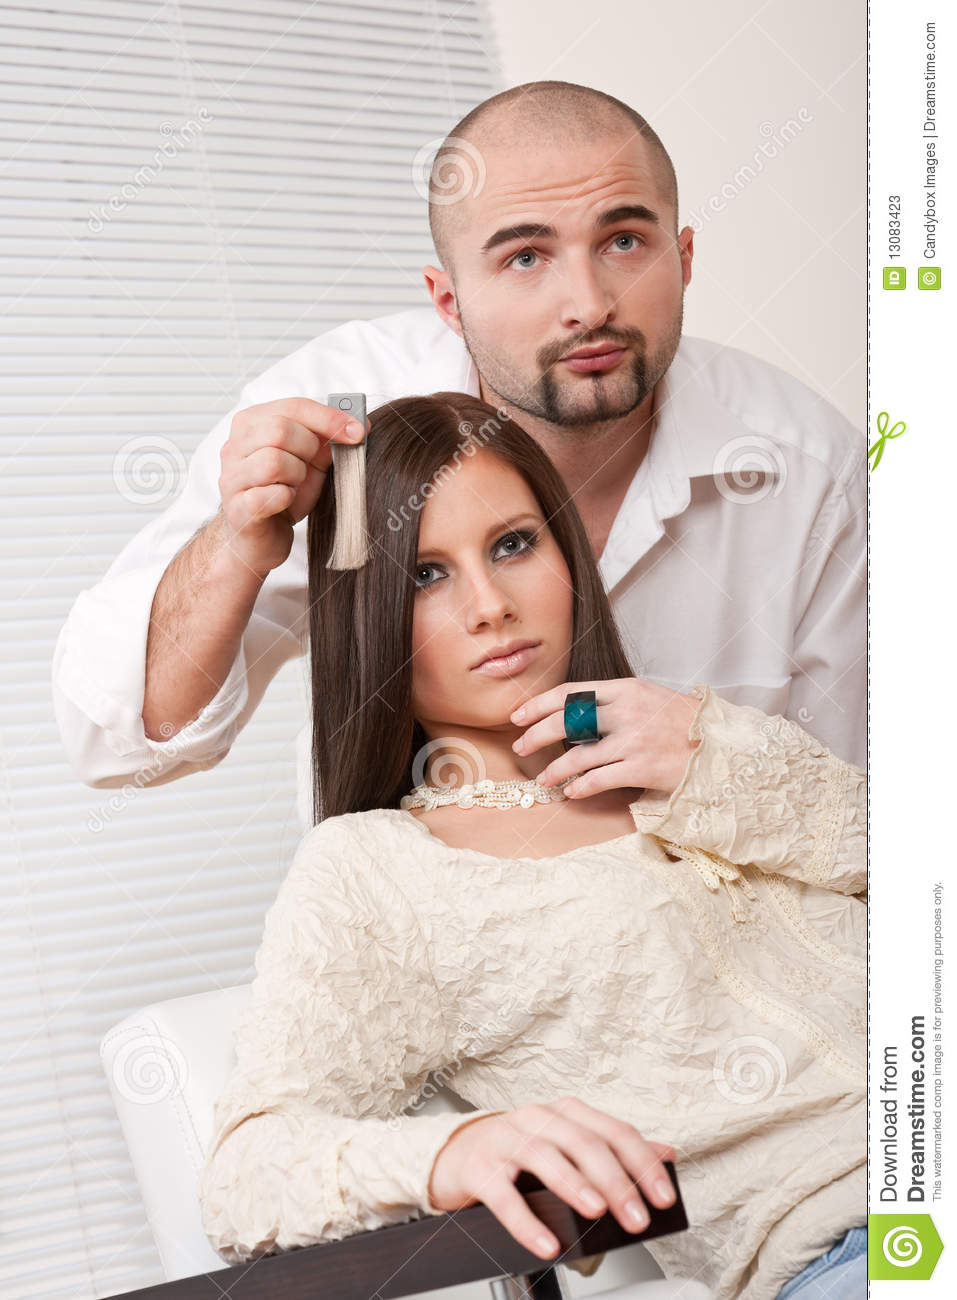 Professional Hairdresser : Professional Hairdresser At Salon Stock Photos - Image: 13083423